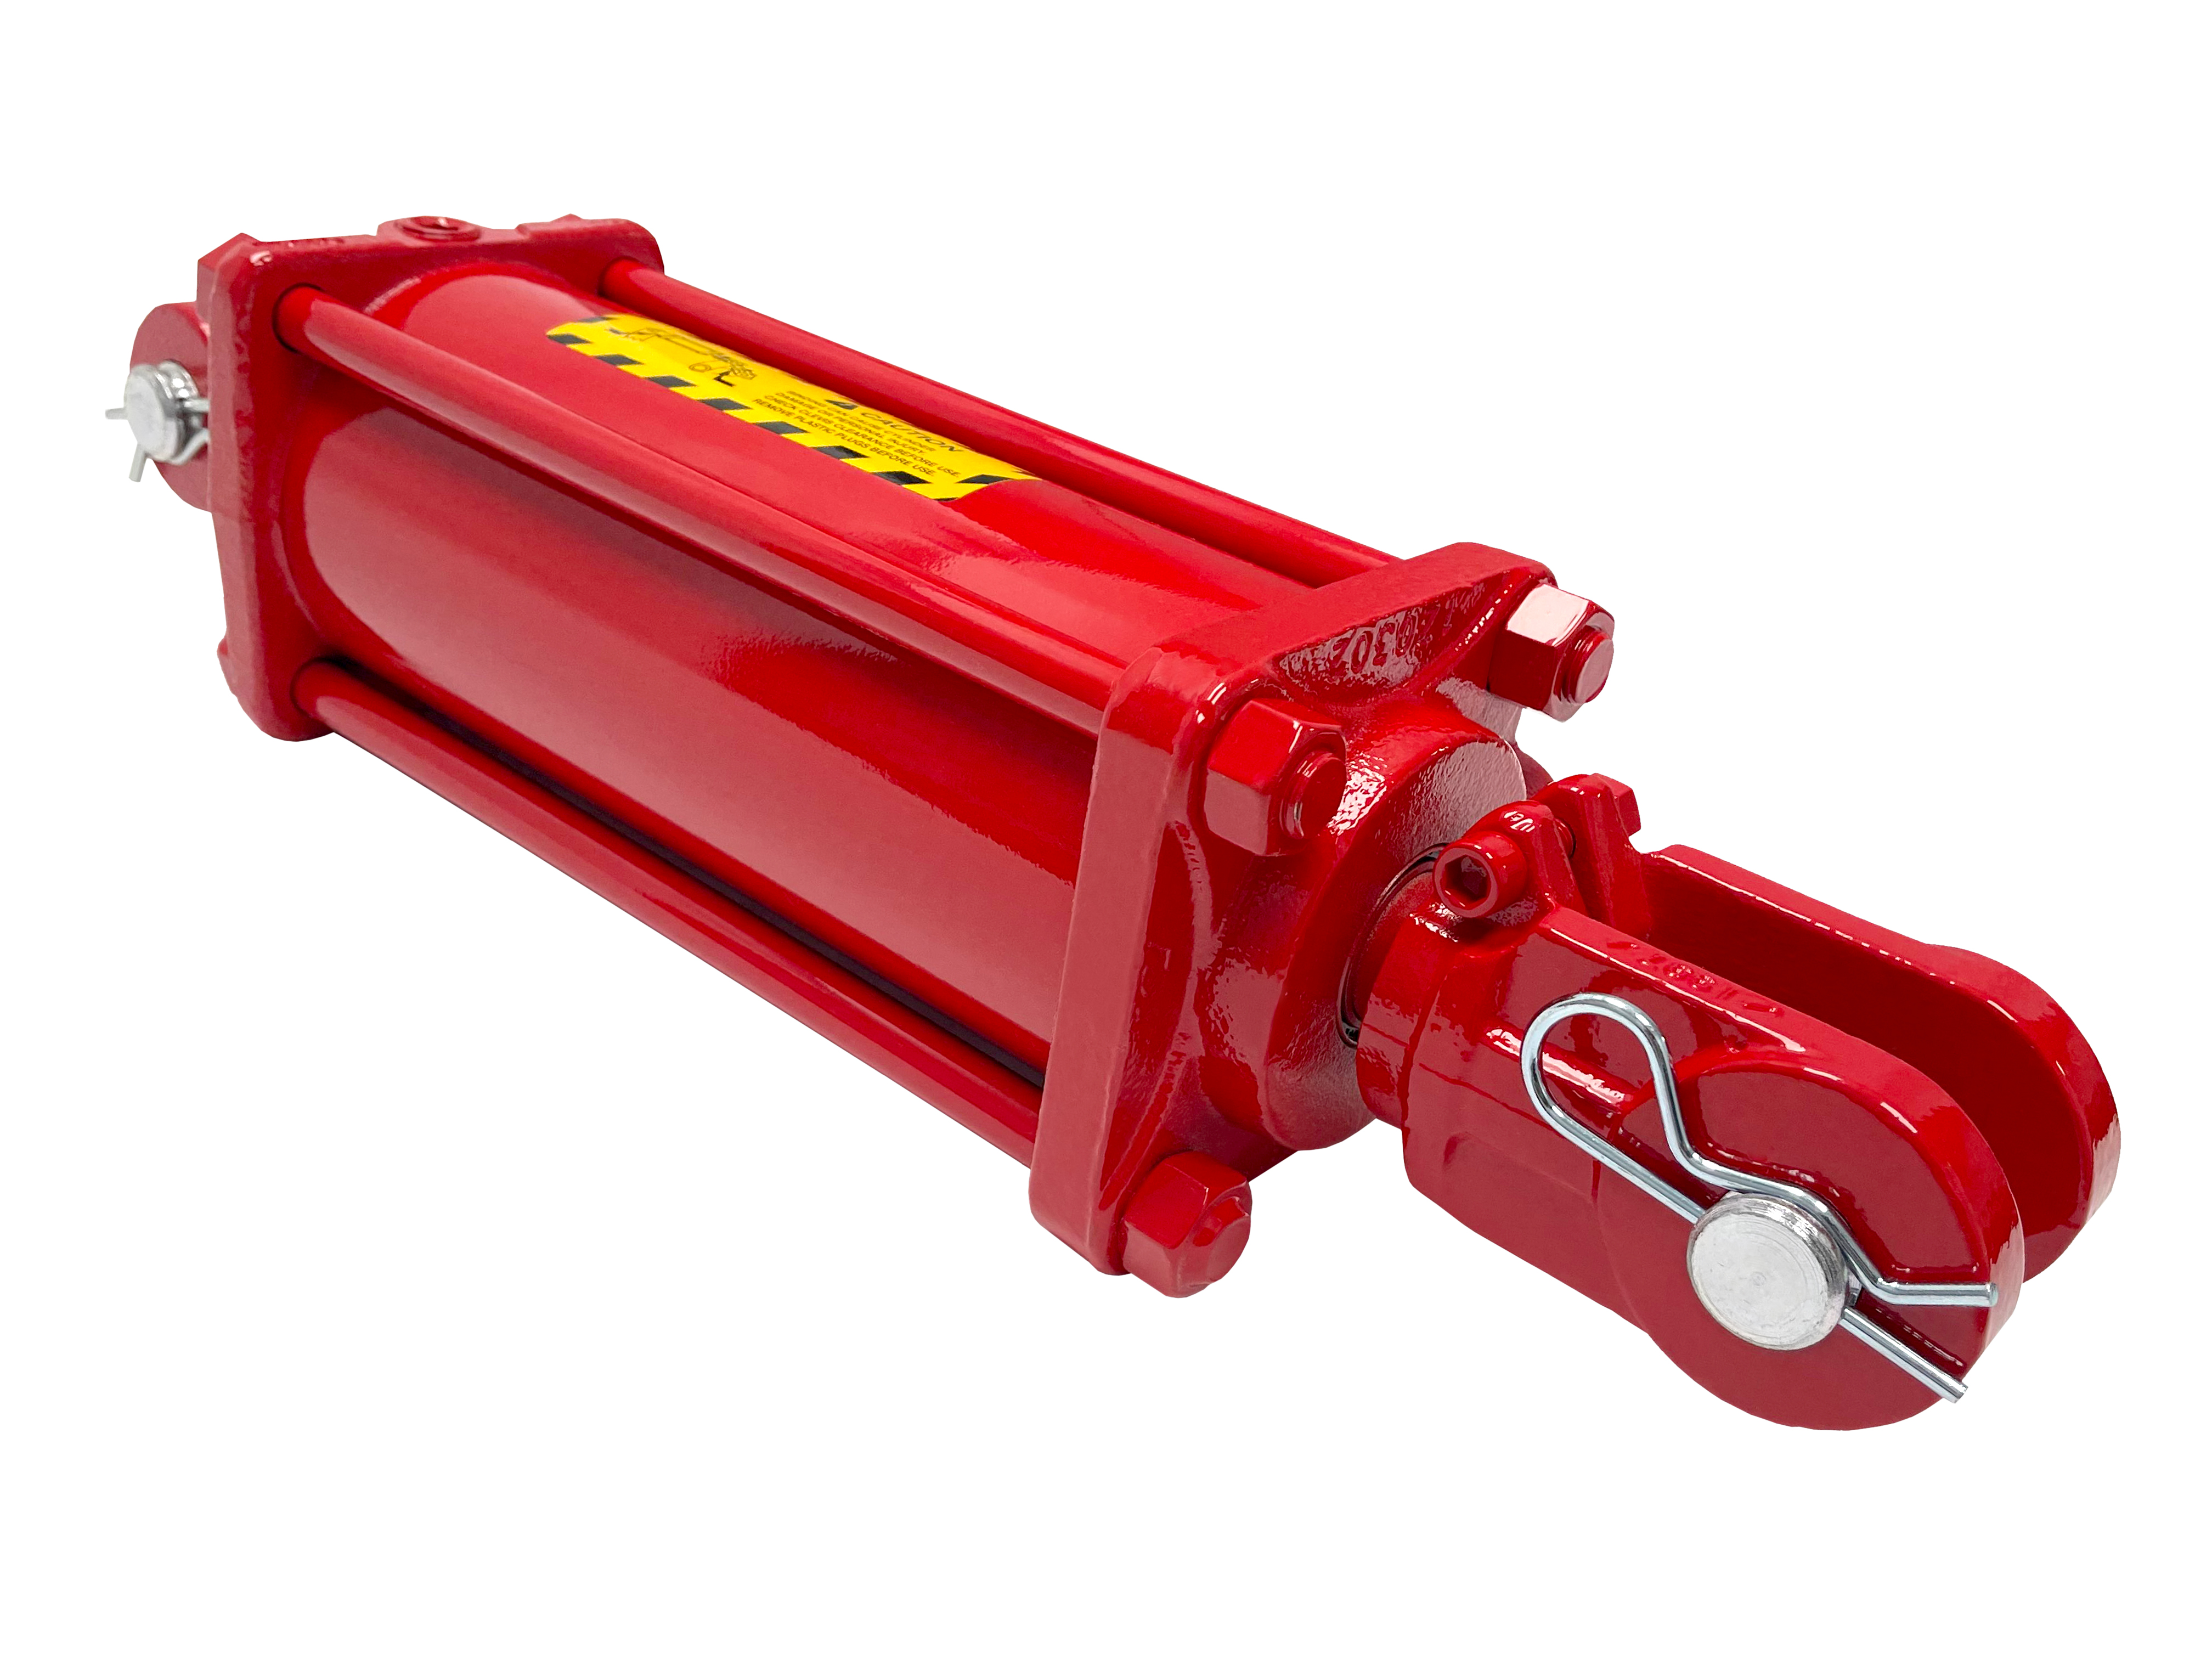 5 bore x 12 stroke CROSS hydraulic cylinder, tie rod double acting cylinder DB series   CROSS MANUFACTURING